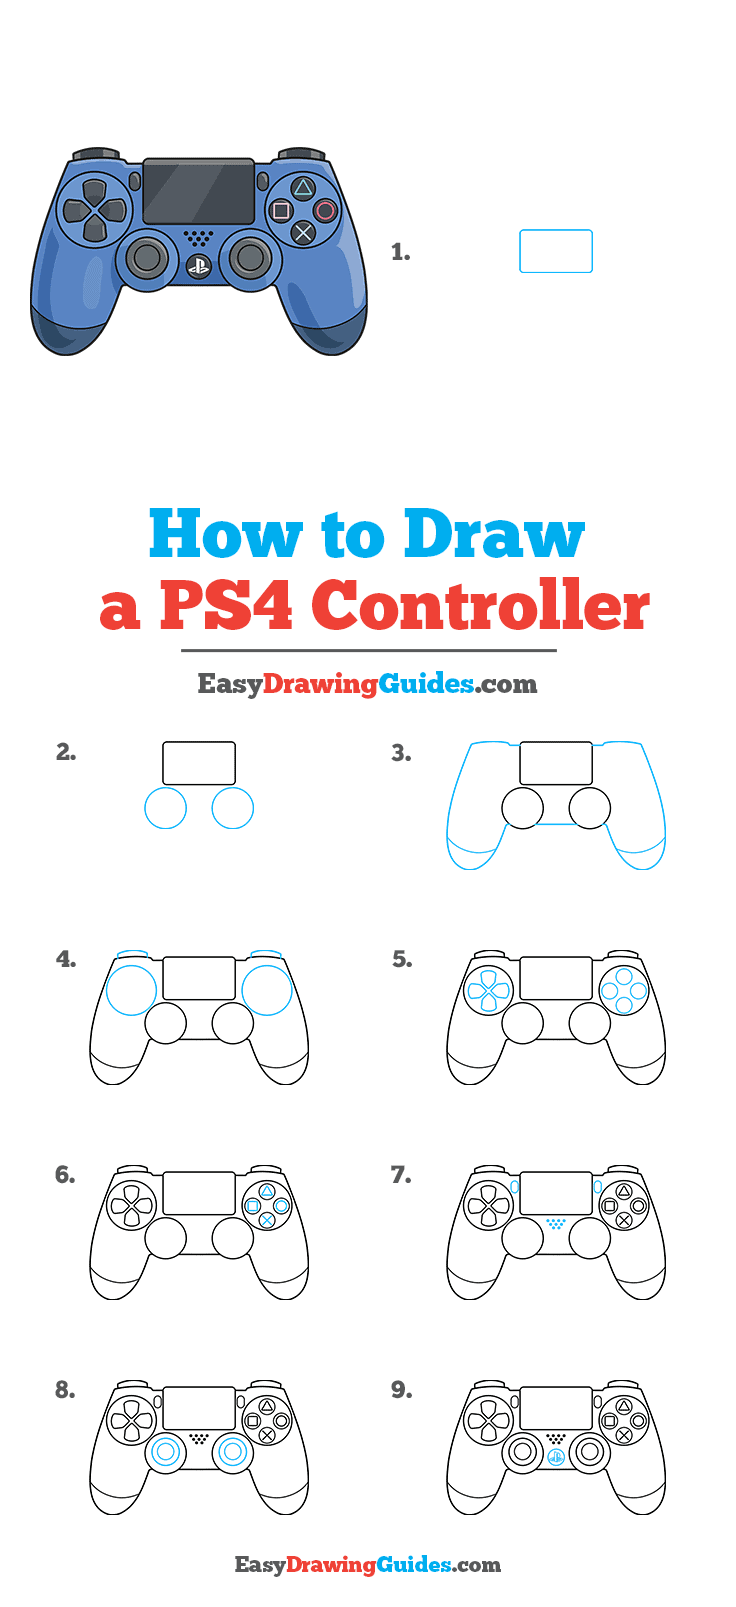 How to Draw PS4 Controller